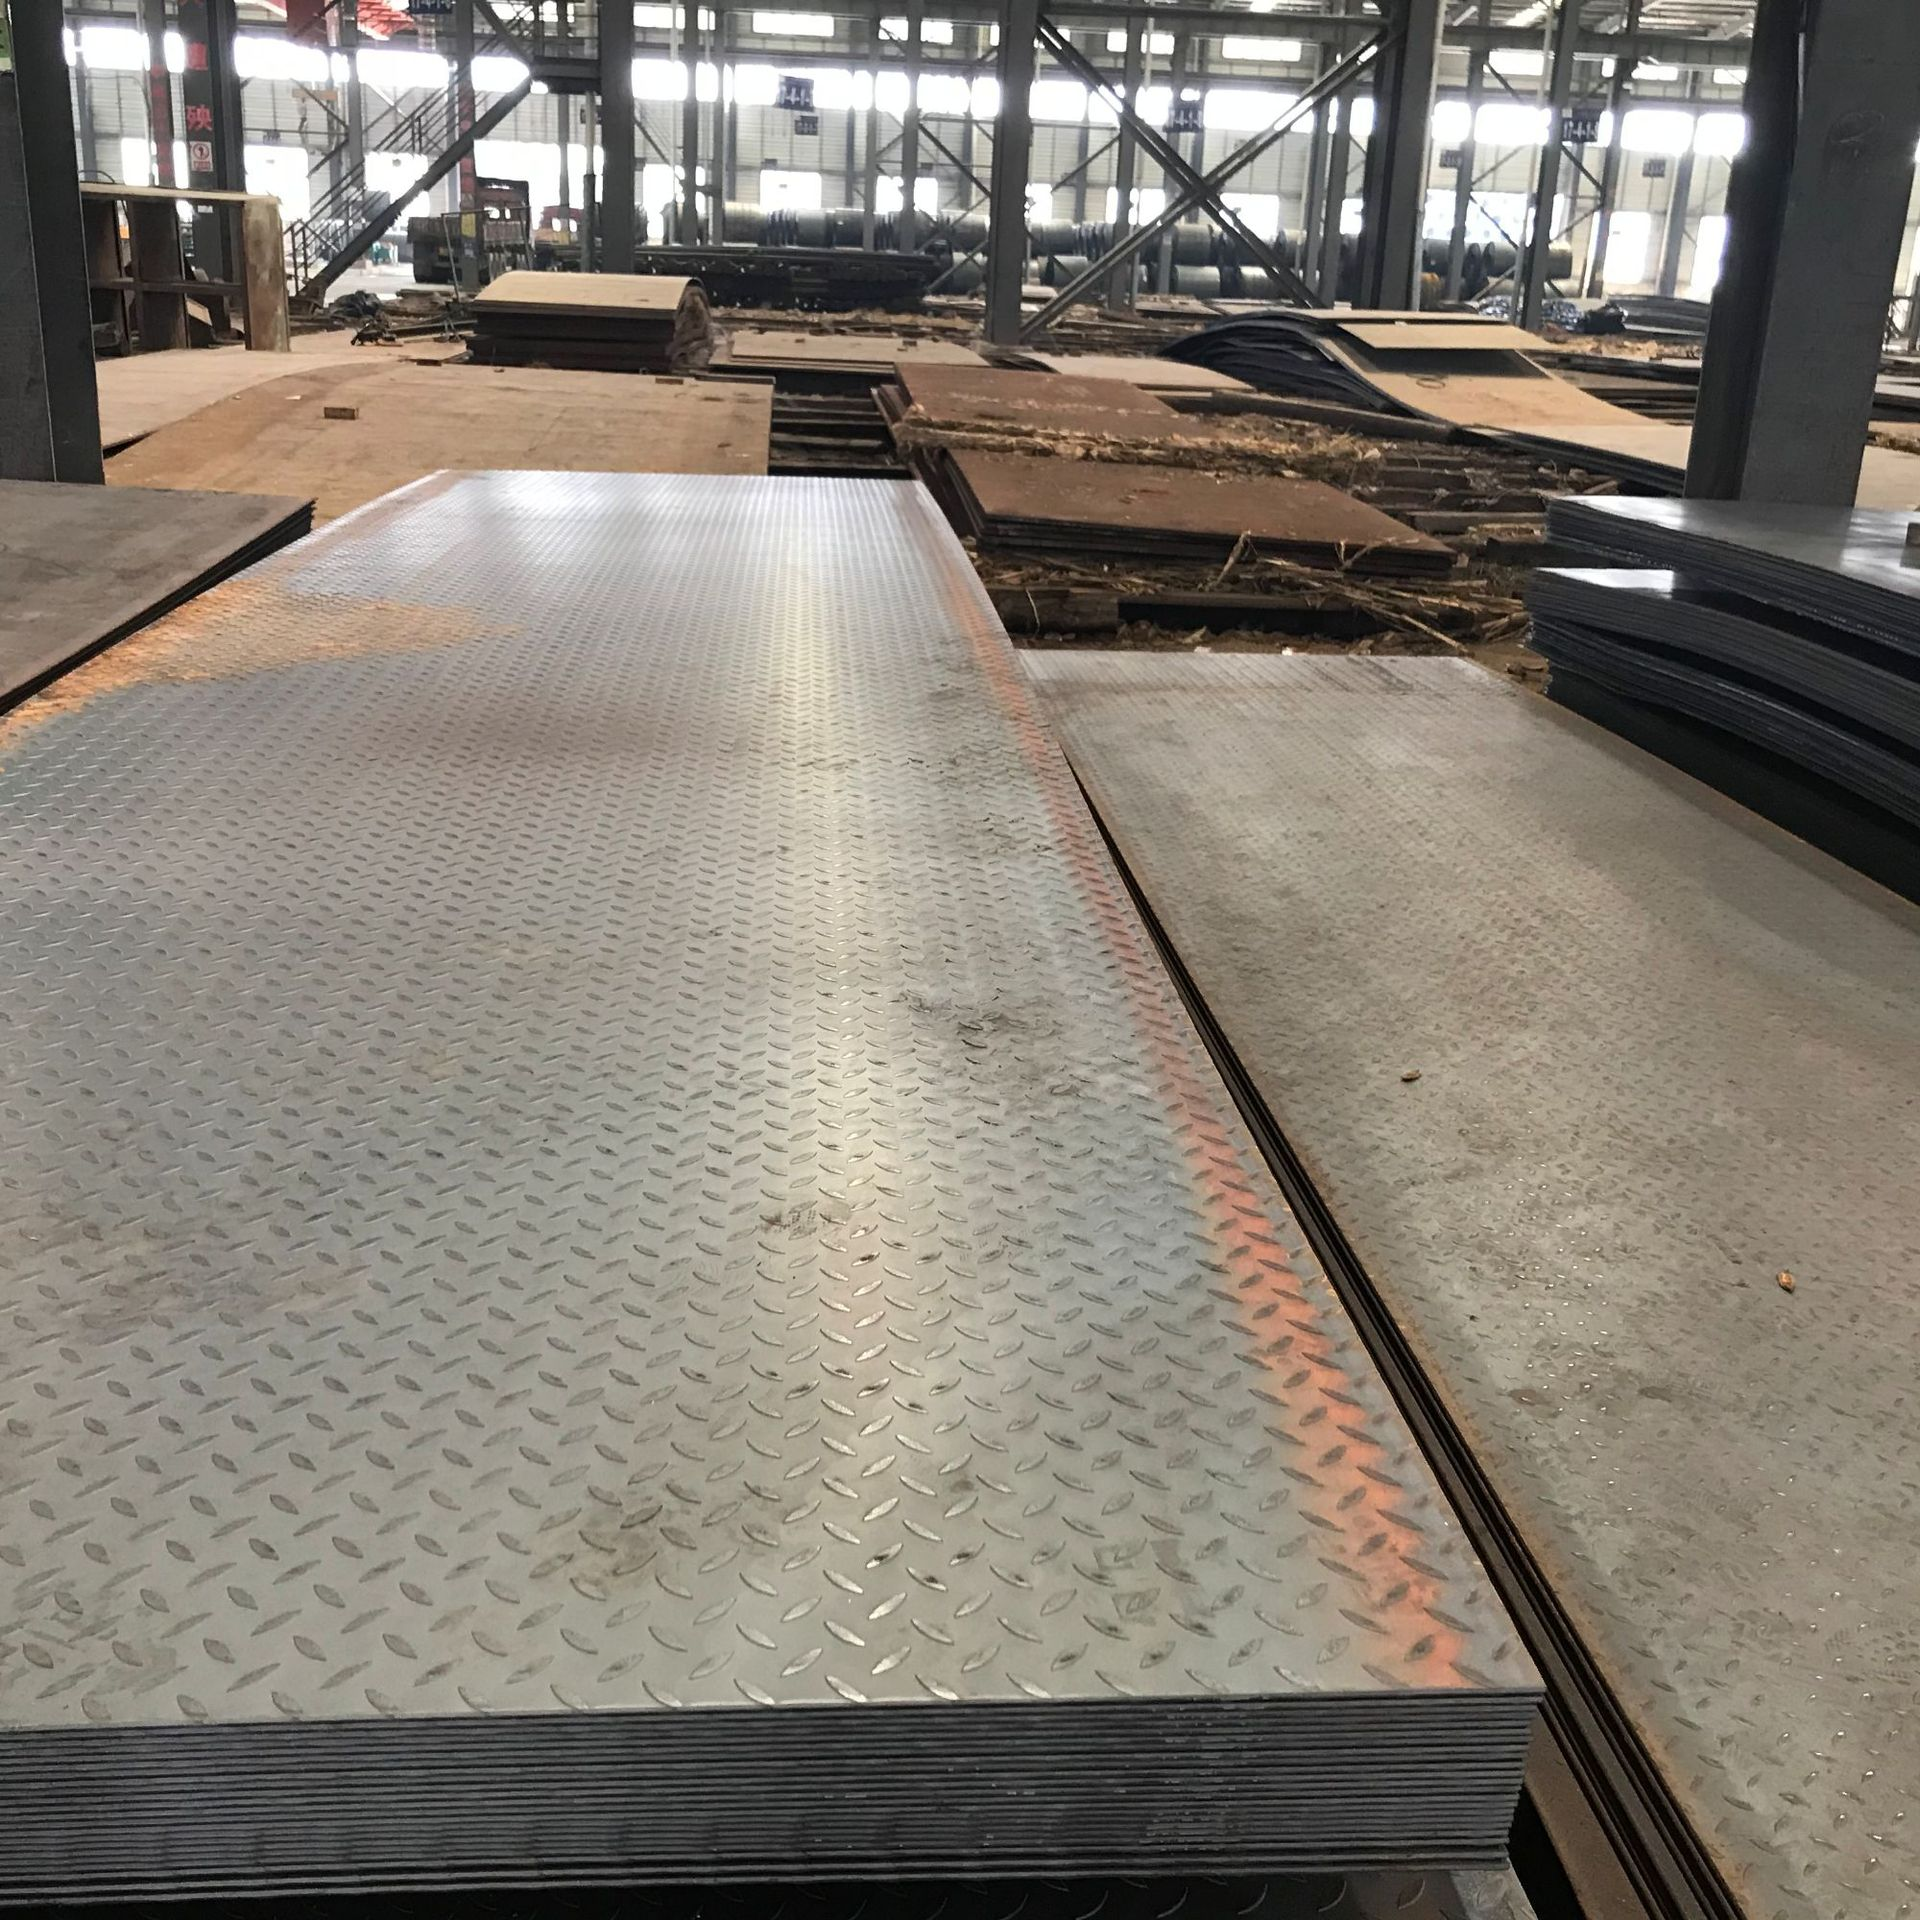 Ordinary hot-rolled steel plate to length and flat medium and heavy plate